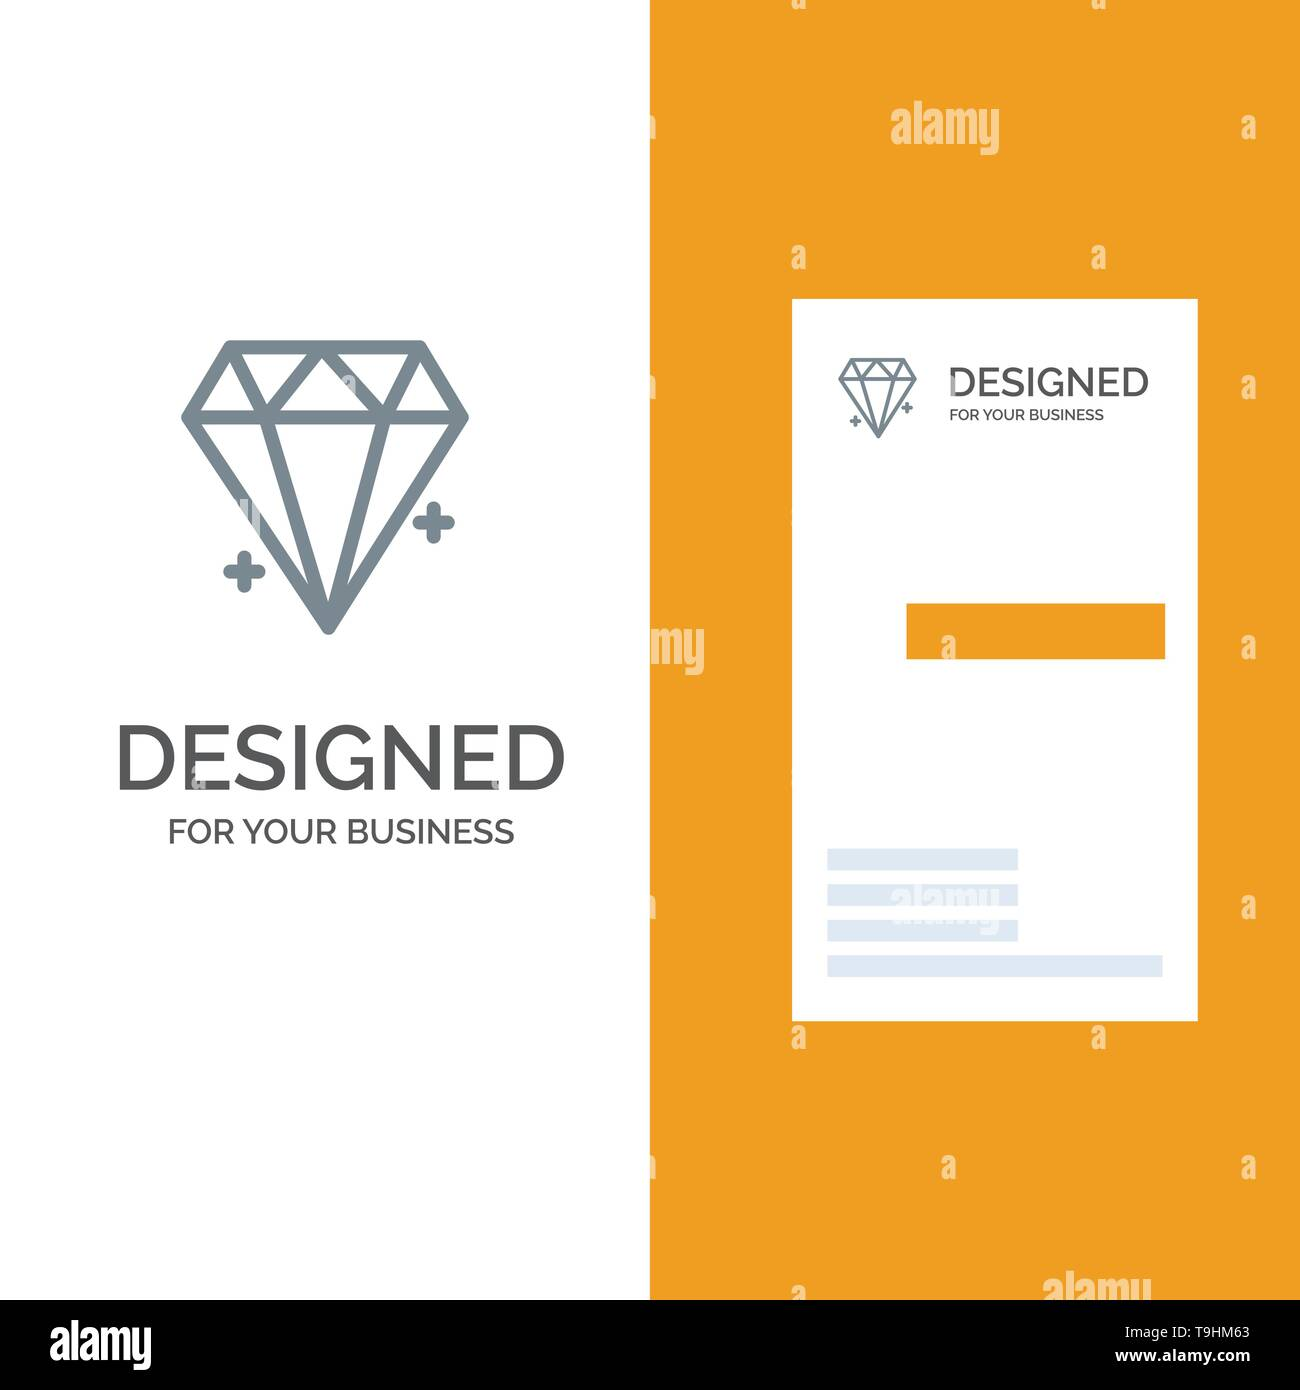 Diamond, Ecommerce, Jewelry, Jewel Grey Logo Design and Business Card Template - Stock Image